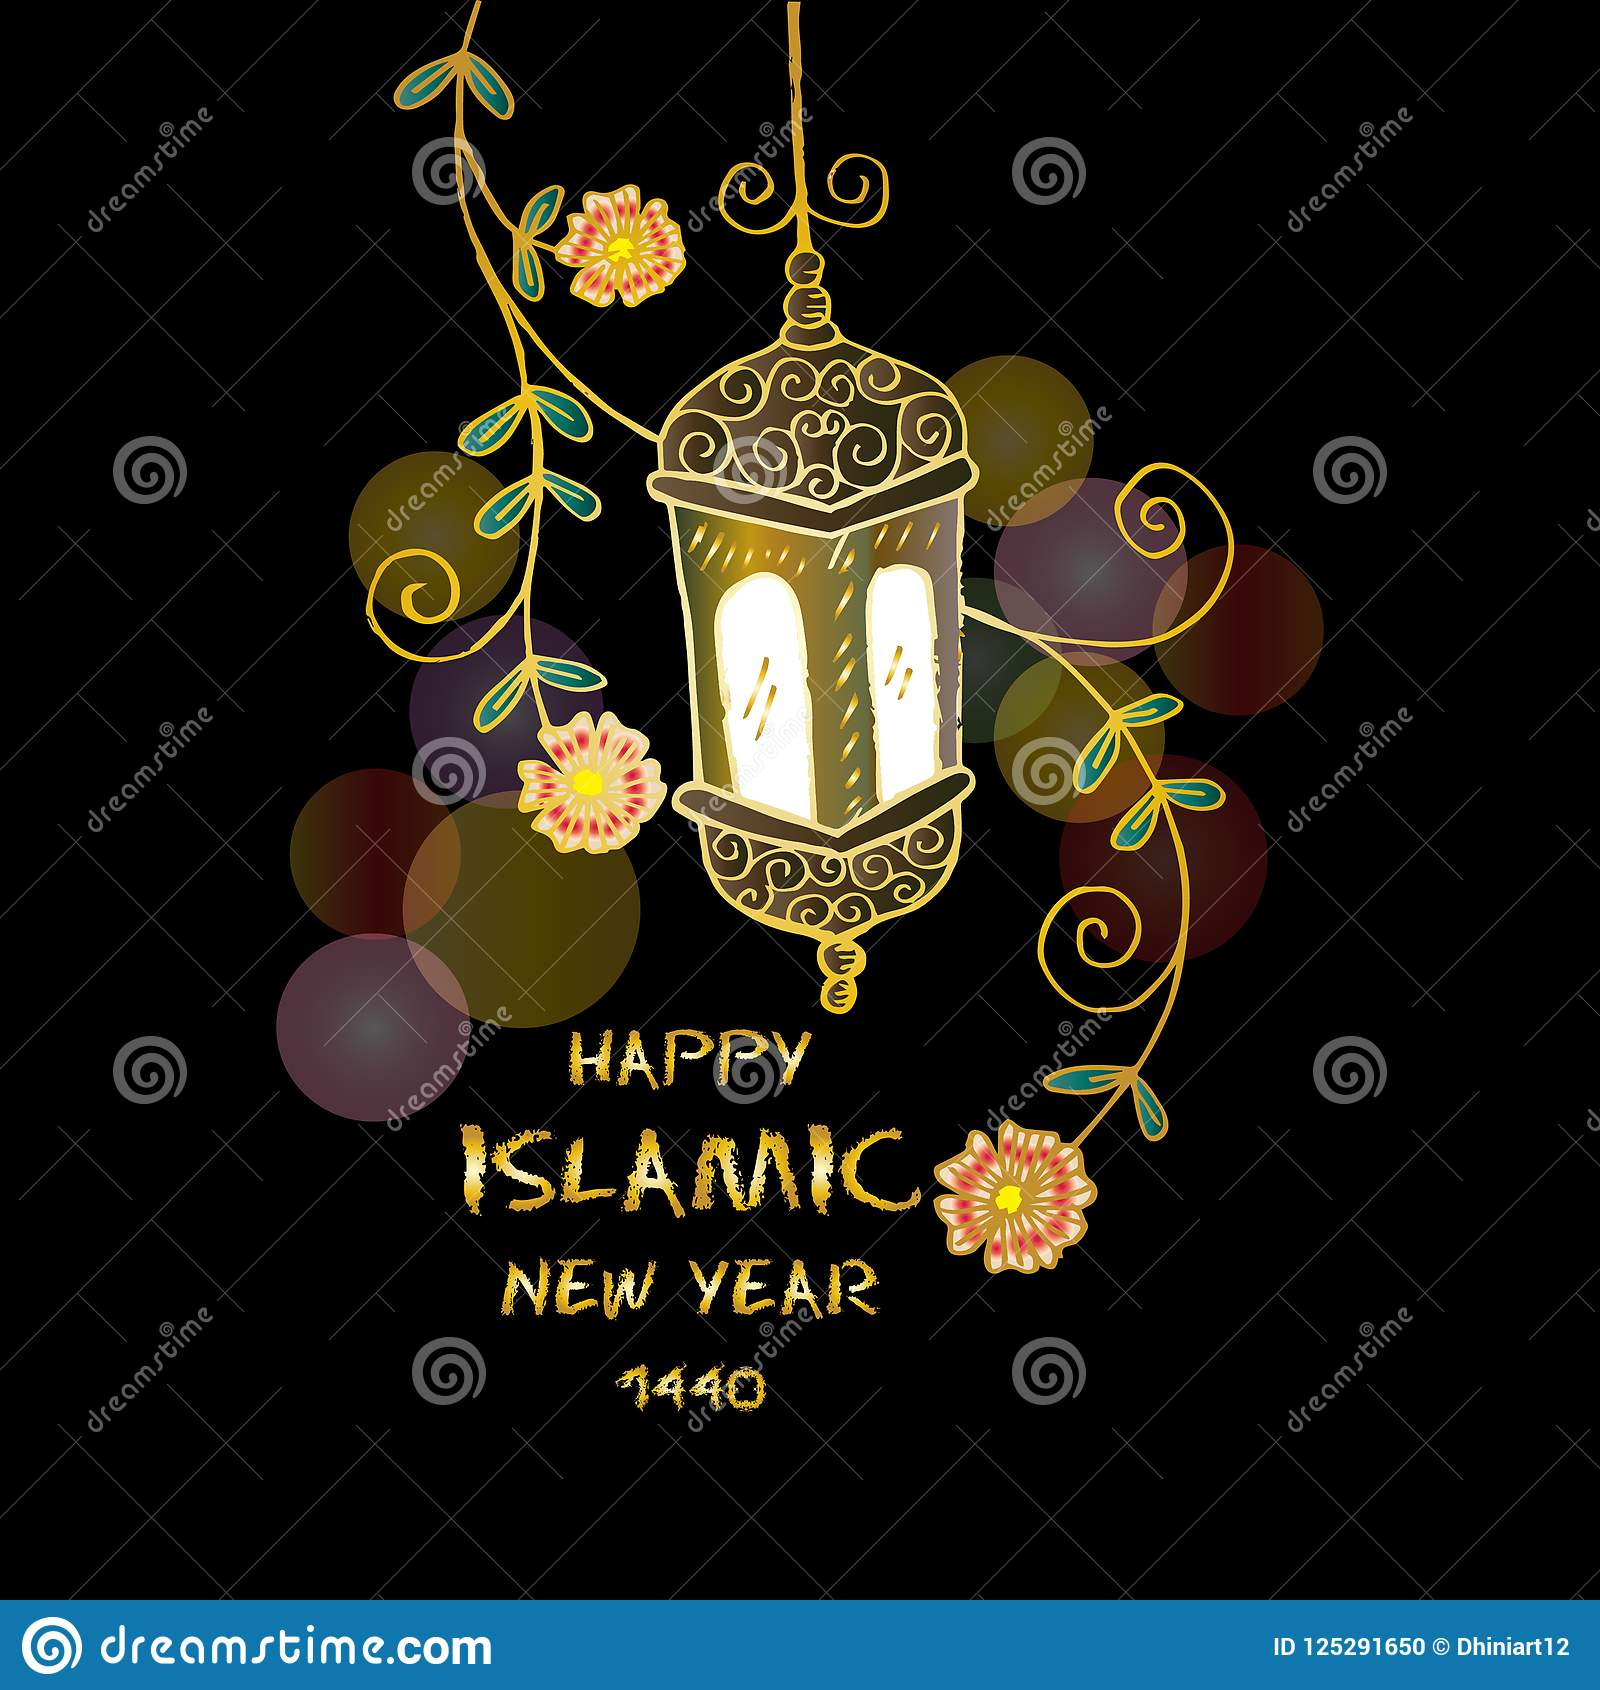 Happy Muharram1440 Hijri Islamic New Year Stock Vector